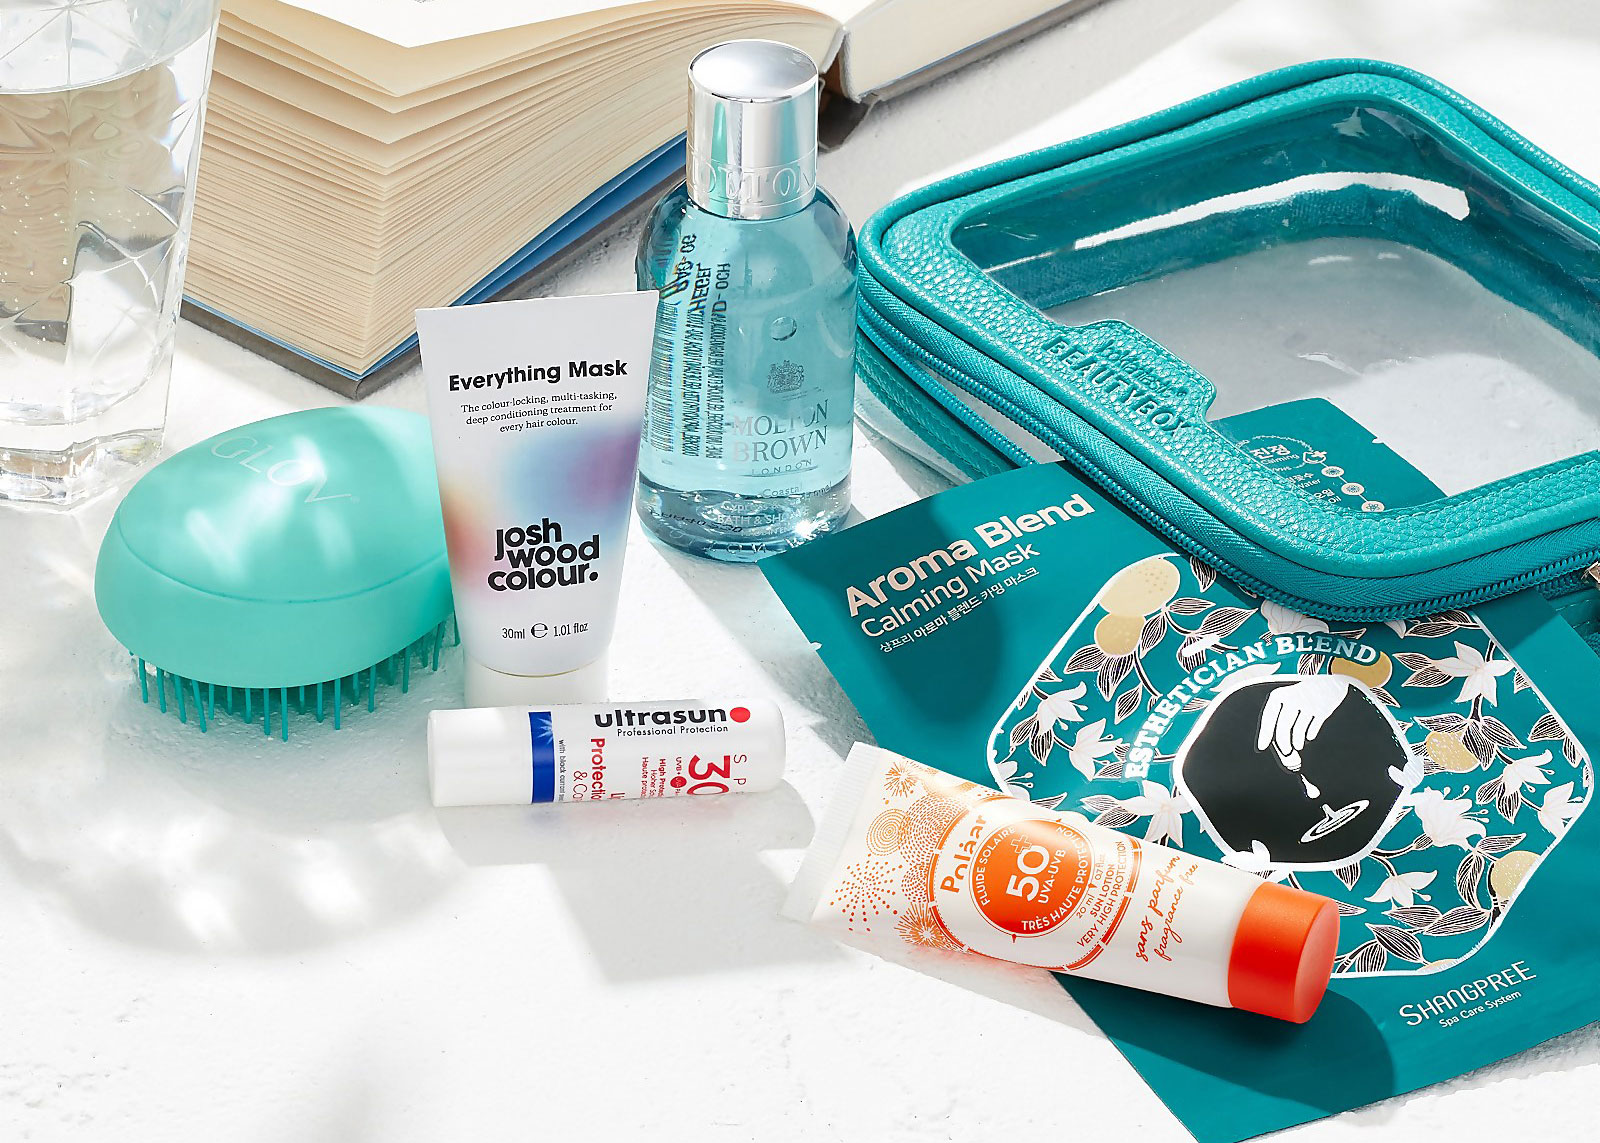 LookFantastic launches £15 staycation beauty box worth over £60